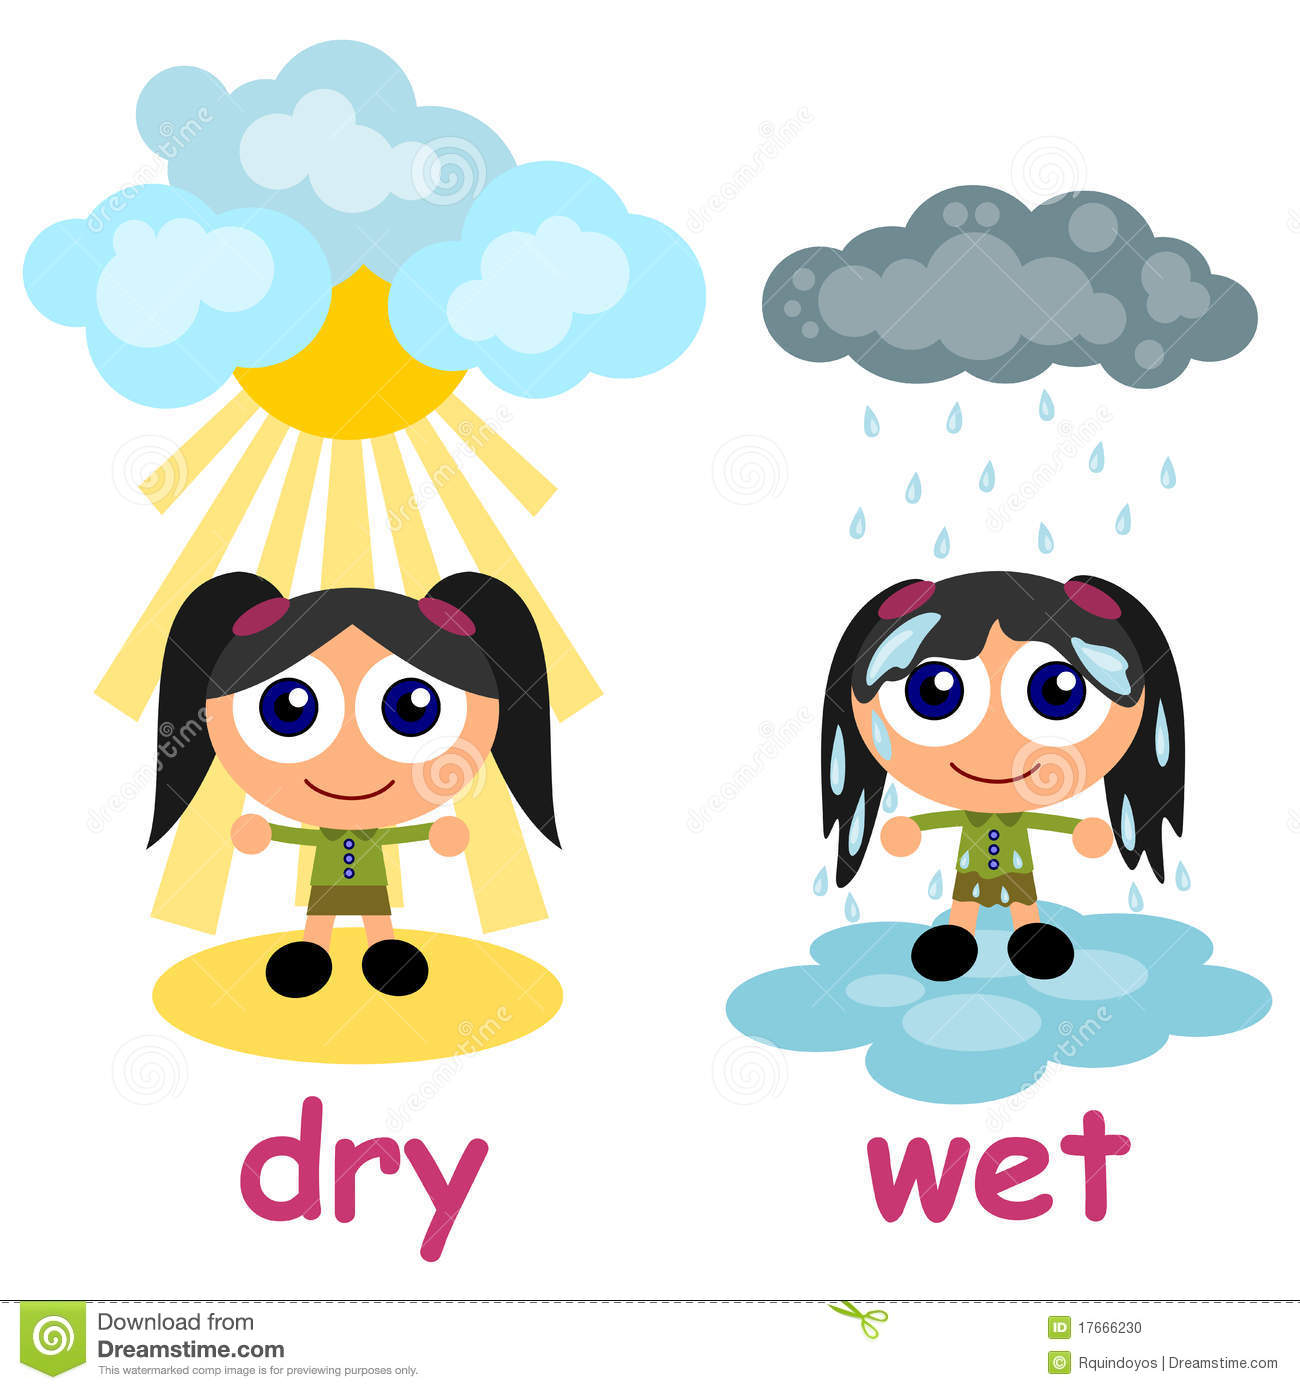 Dry clipart.